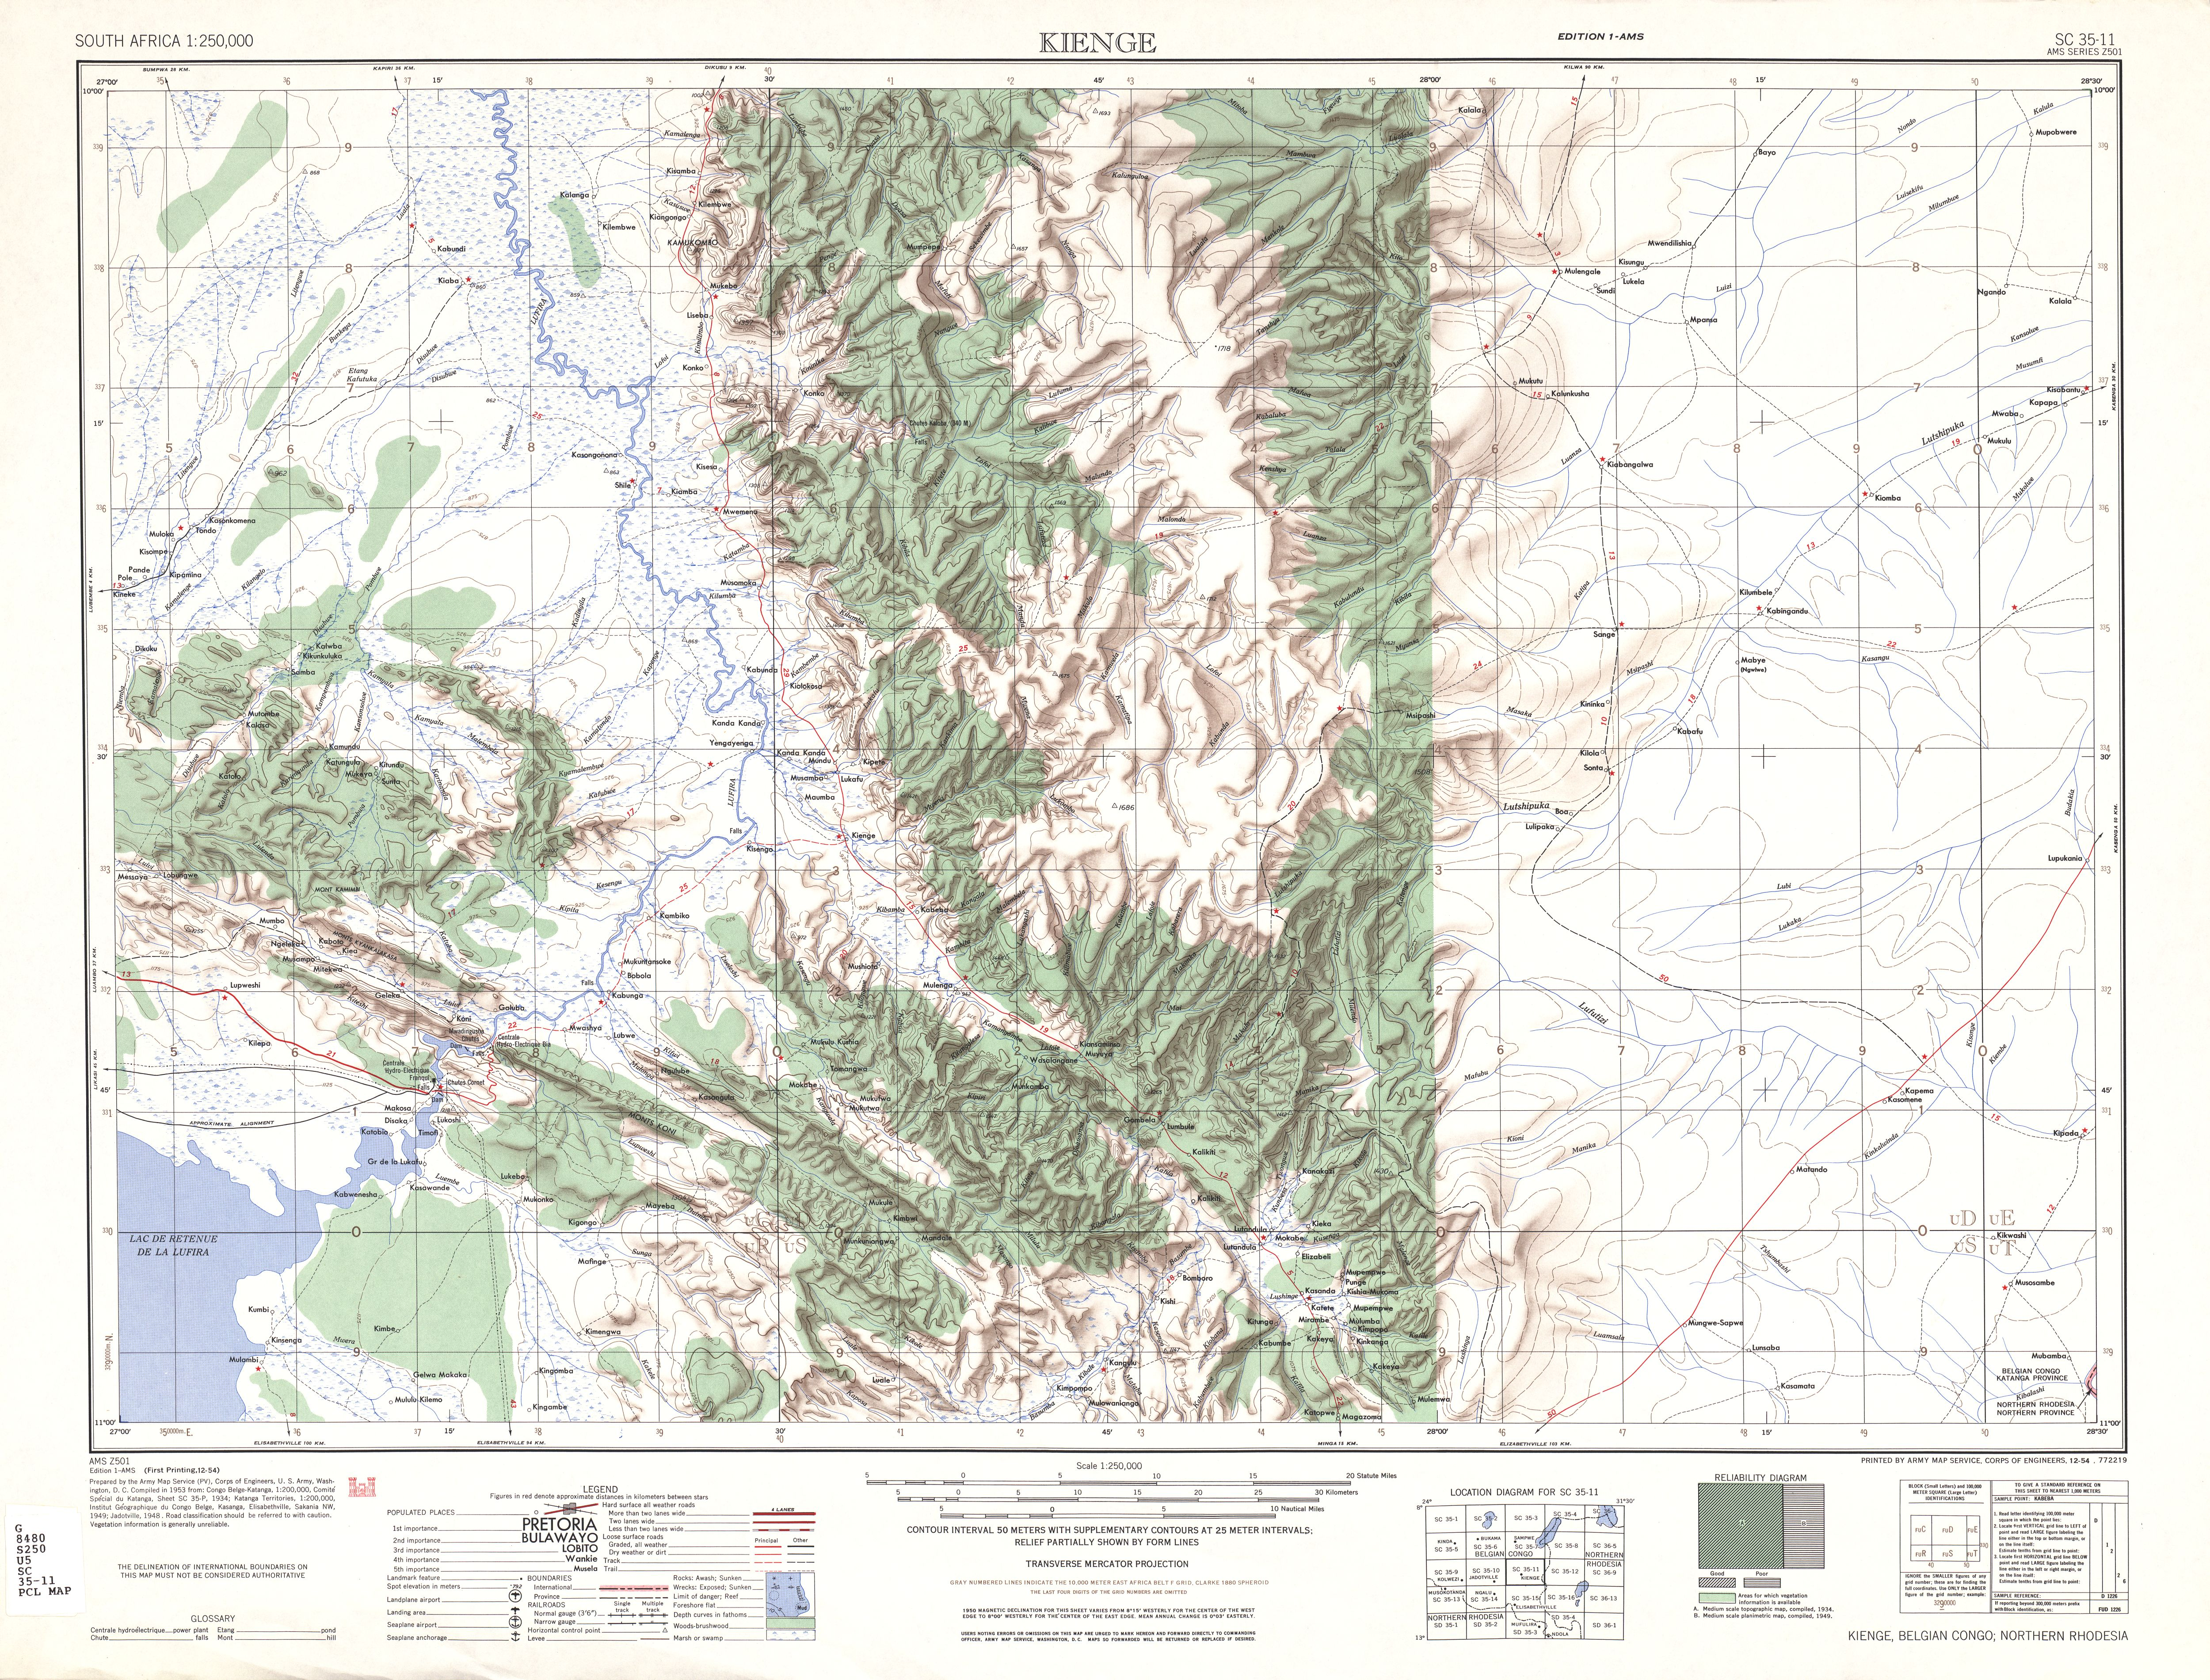 Kienge Topographic Map Sheet, Southern Africa 1954